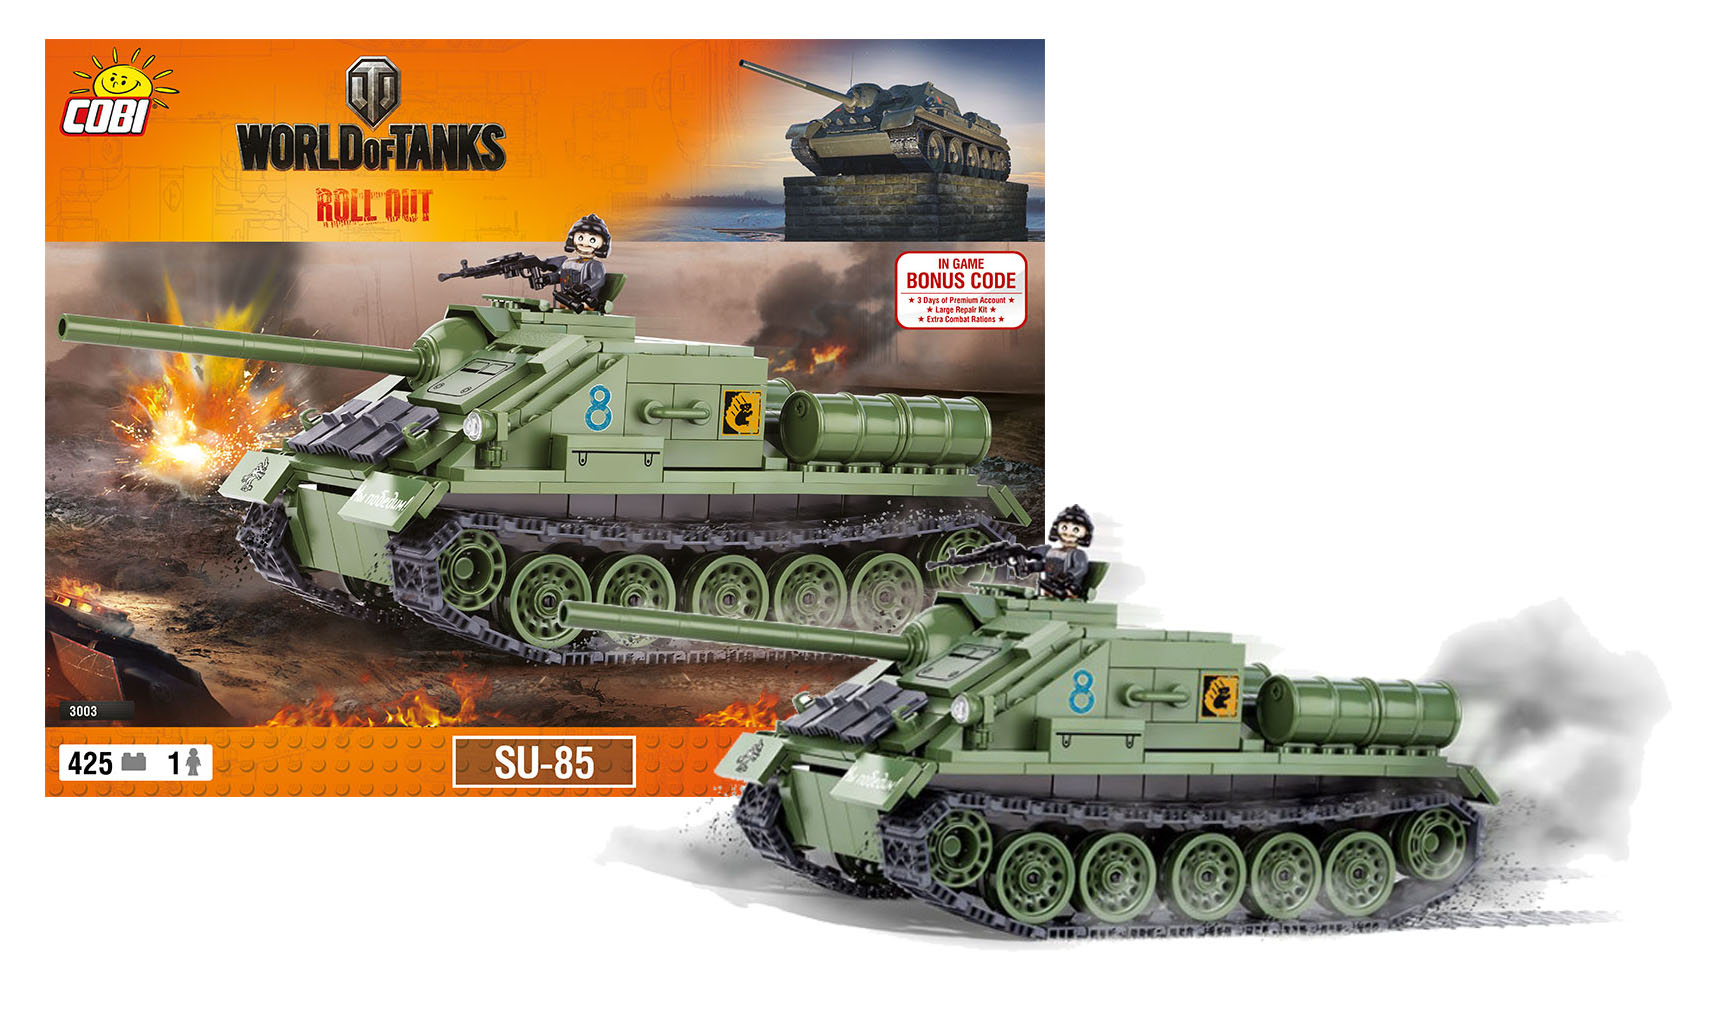 COBI stavebnice World of Tanks tank SU 85, 425 k, 1 f